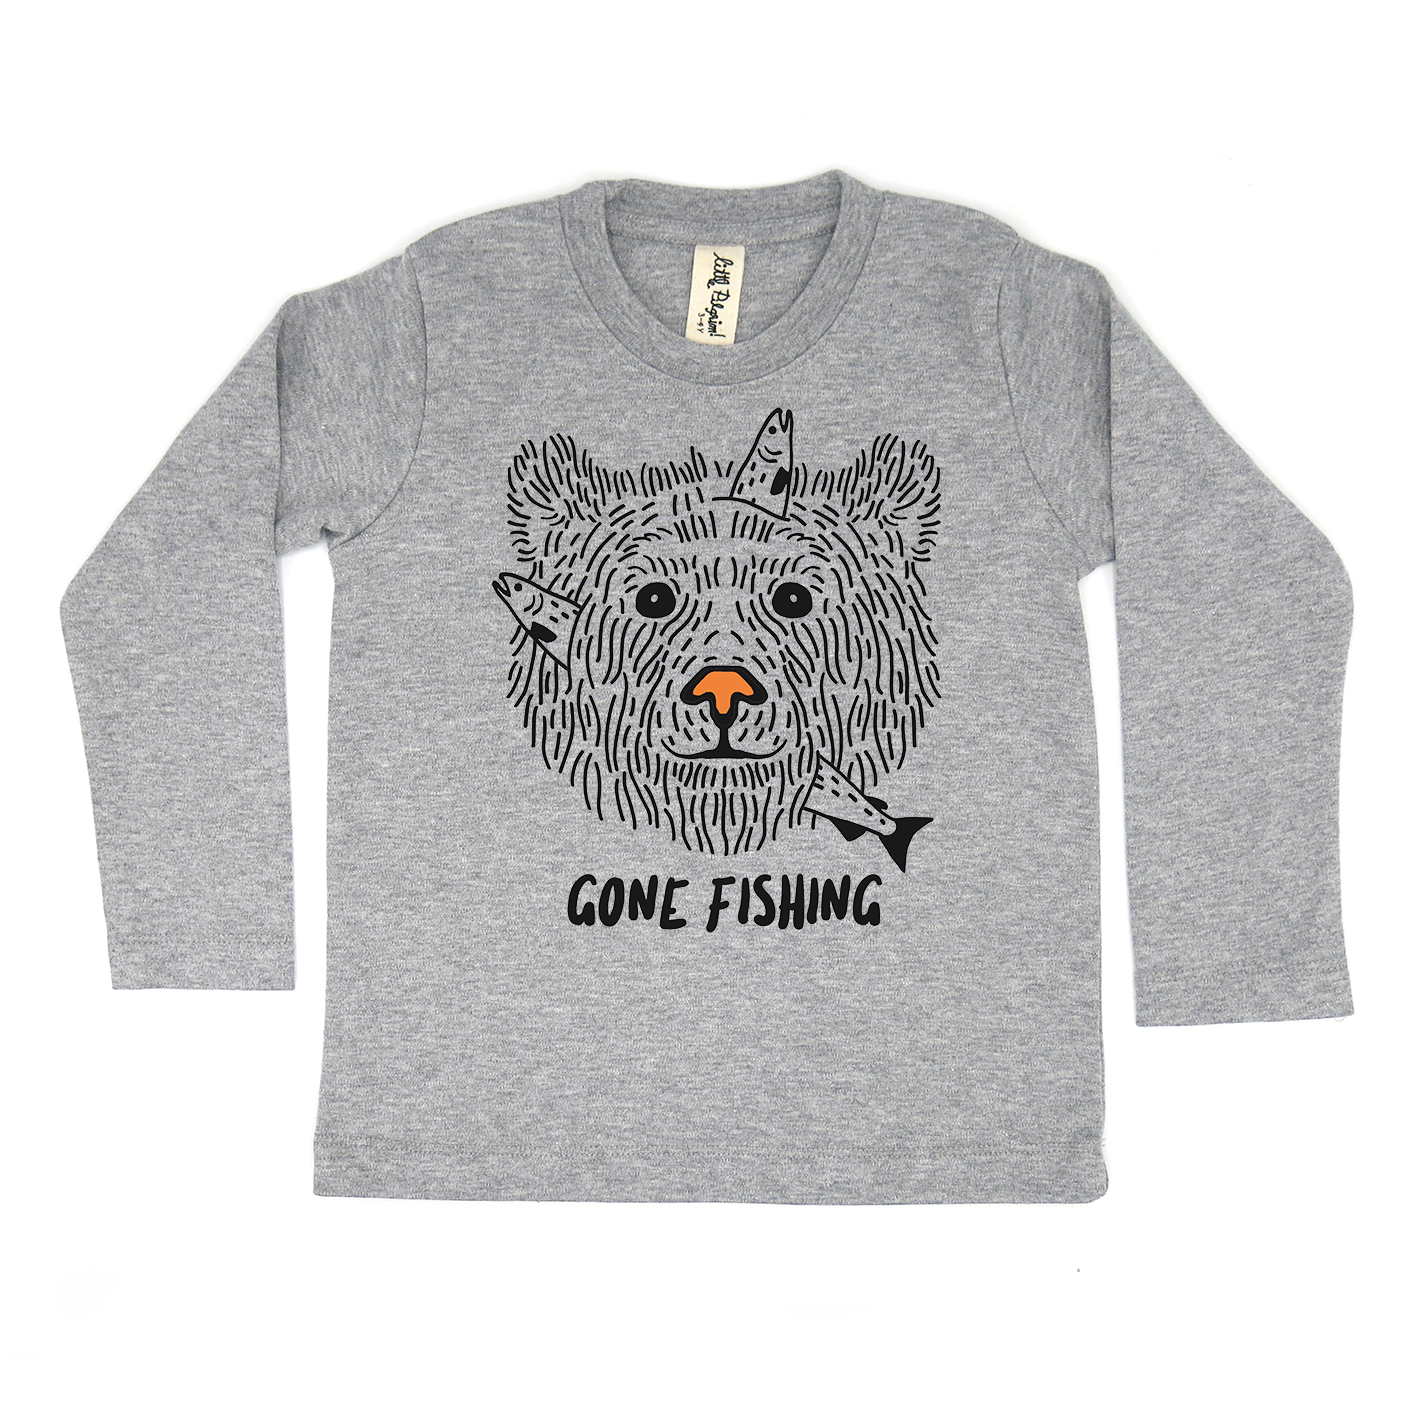 BABY/ KIDS / WOMEN / MEN LP03245 GONE FISHING CREW NECK LONG SLEEVE